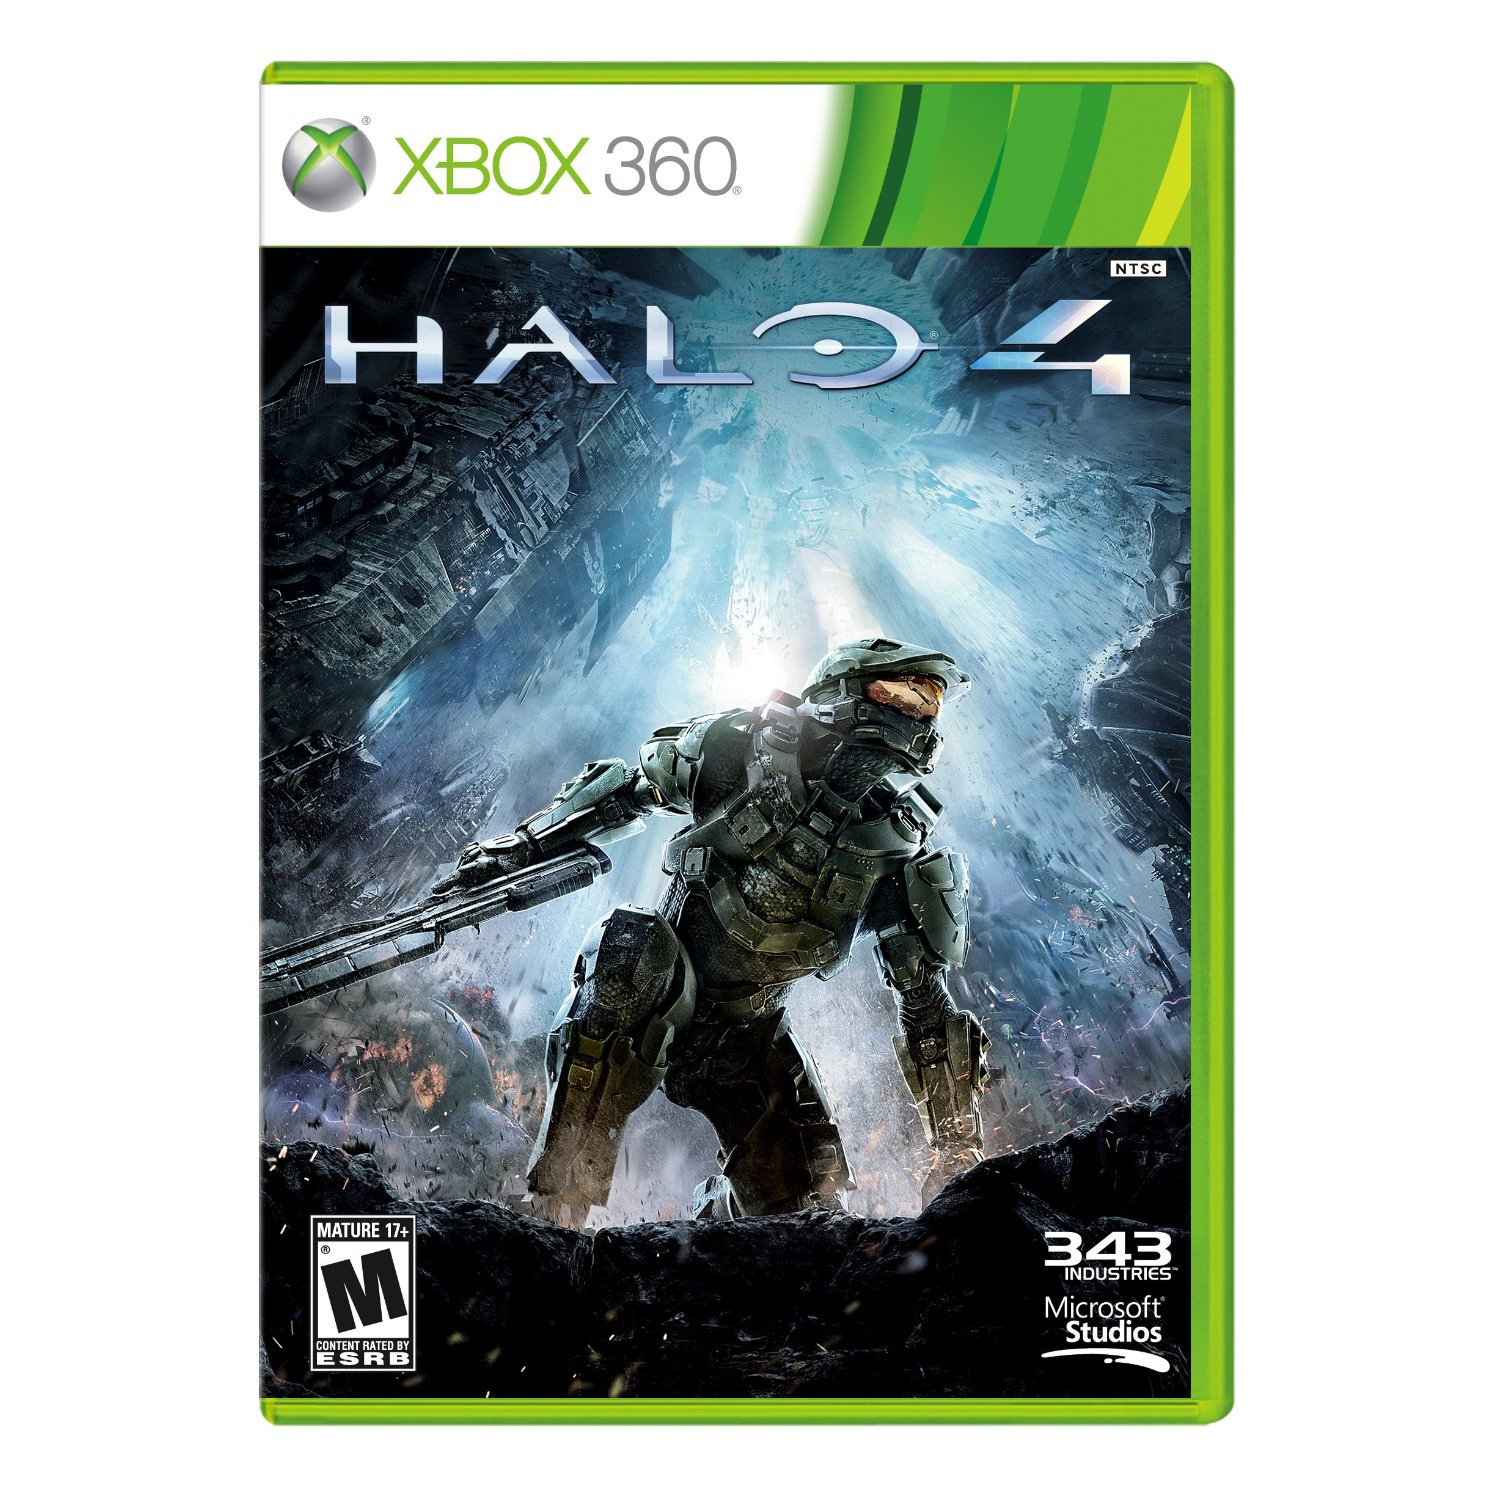 360: HALO 4 (2DISC) (LIMITED EDITION) (NEW)